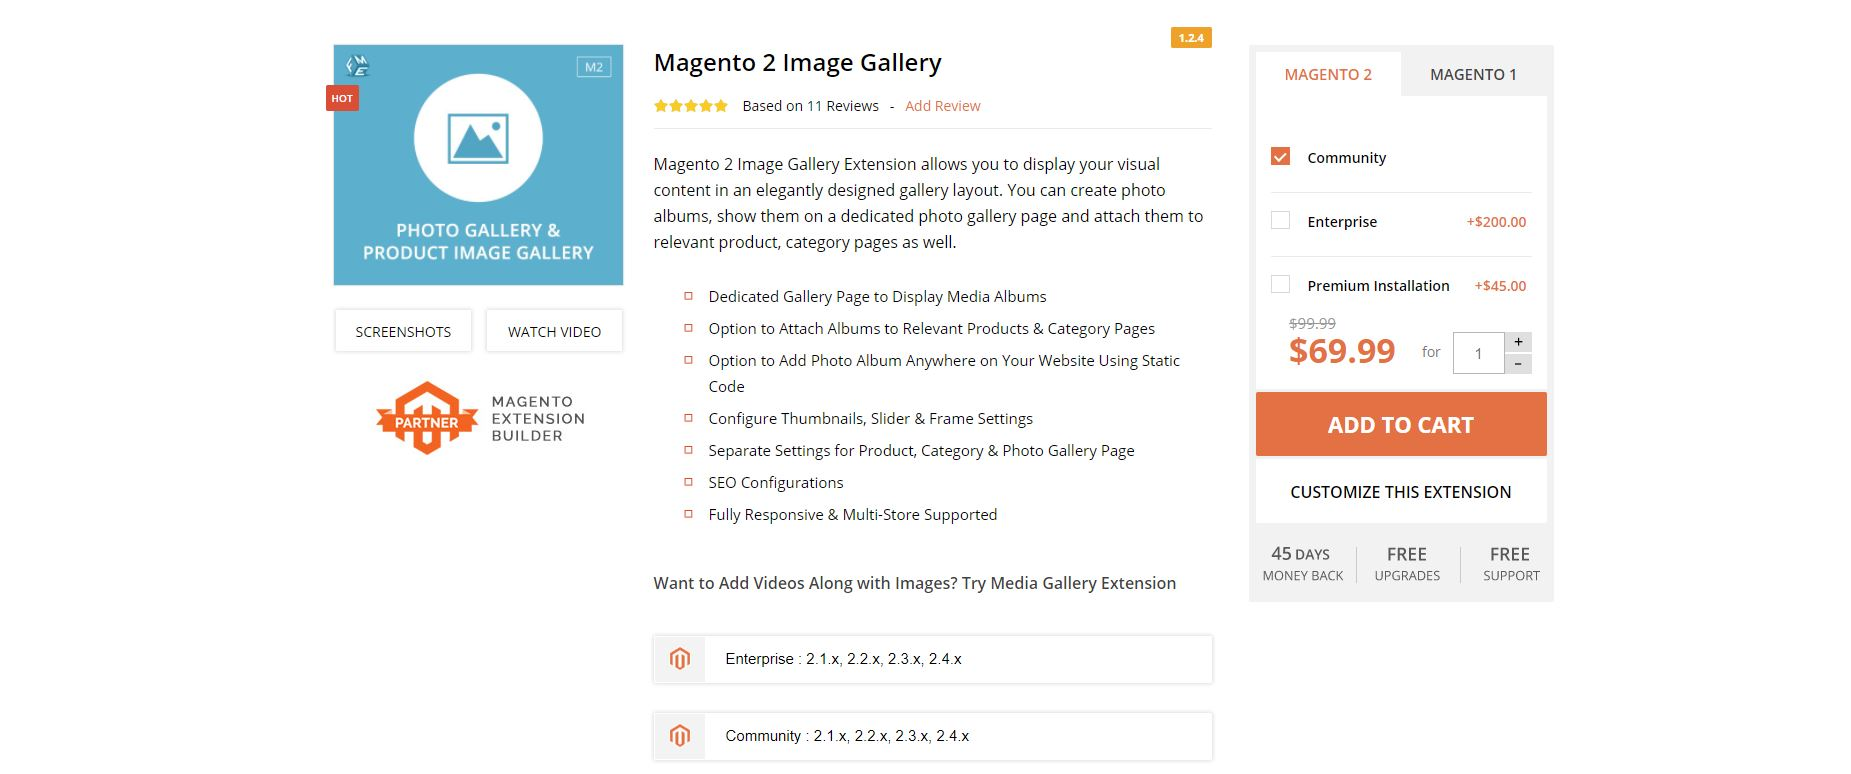 Magento image gallery extension